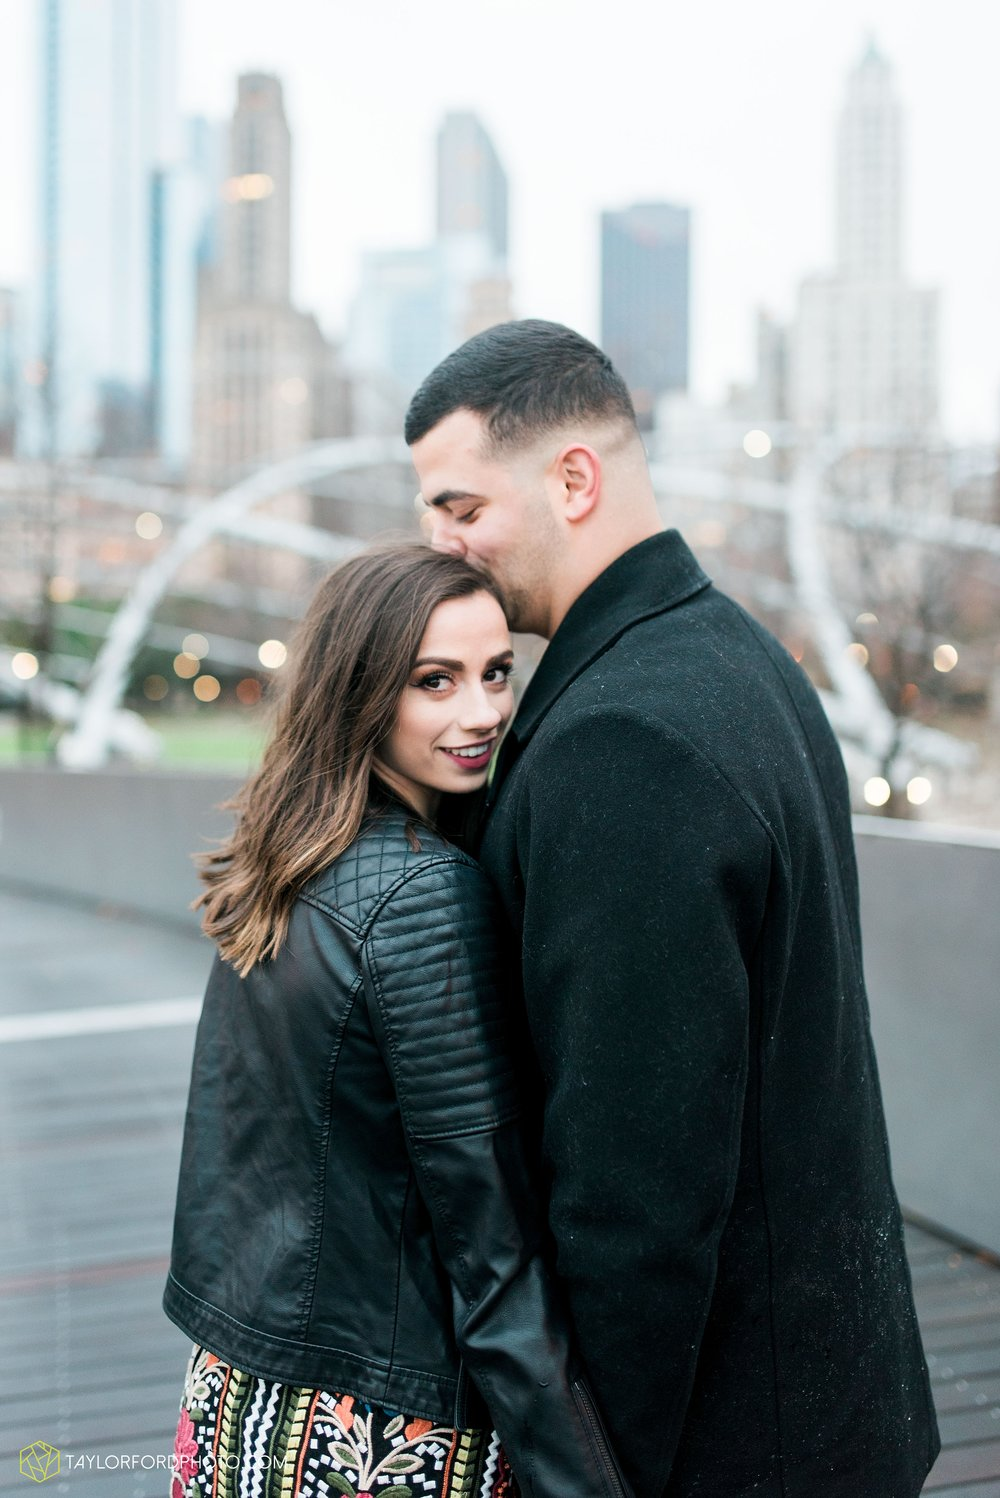 chicago-illinois-engagement-lincoln-park-zoo-downtown-millenium-park-cloud-gate-photographer-Taylor-Ford-Photography_6049.jpg